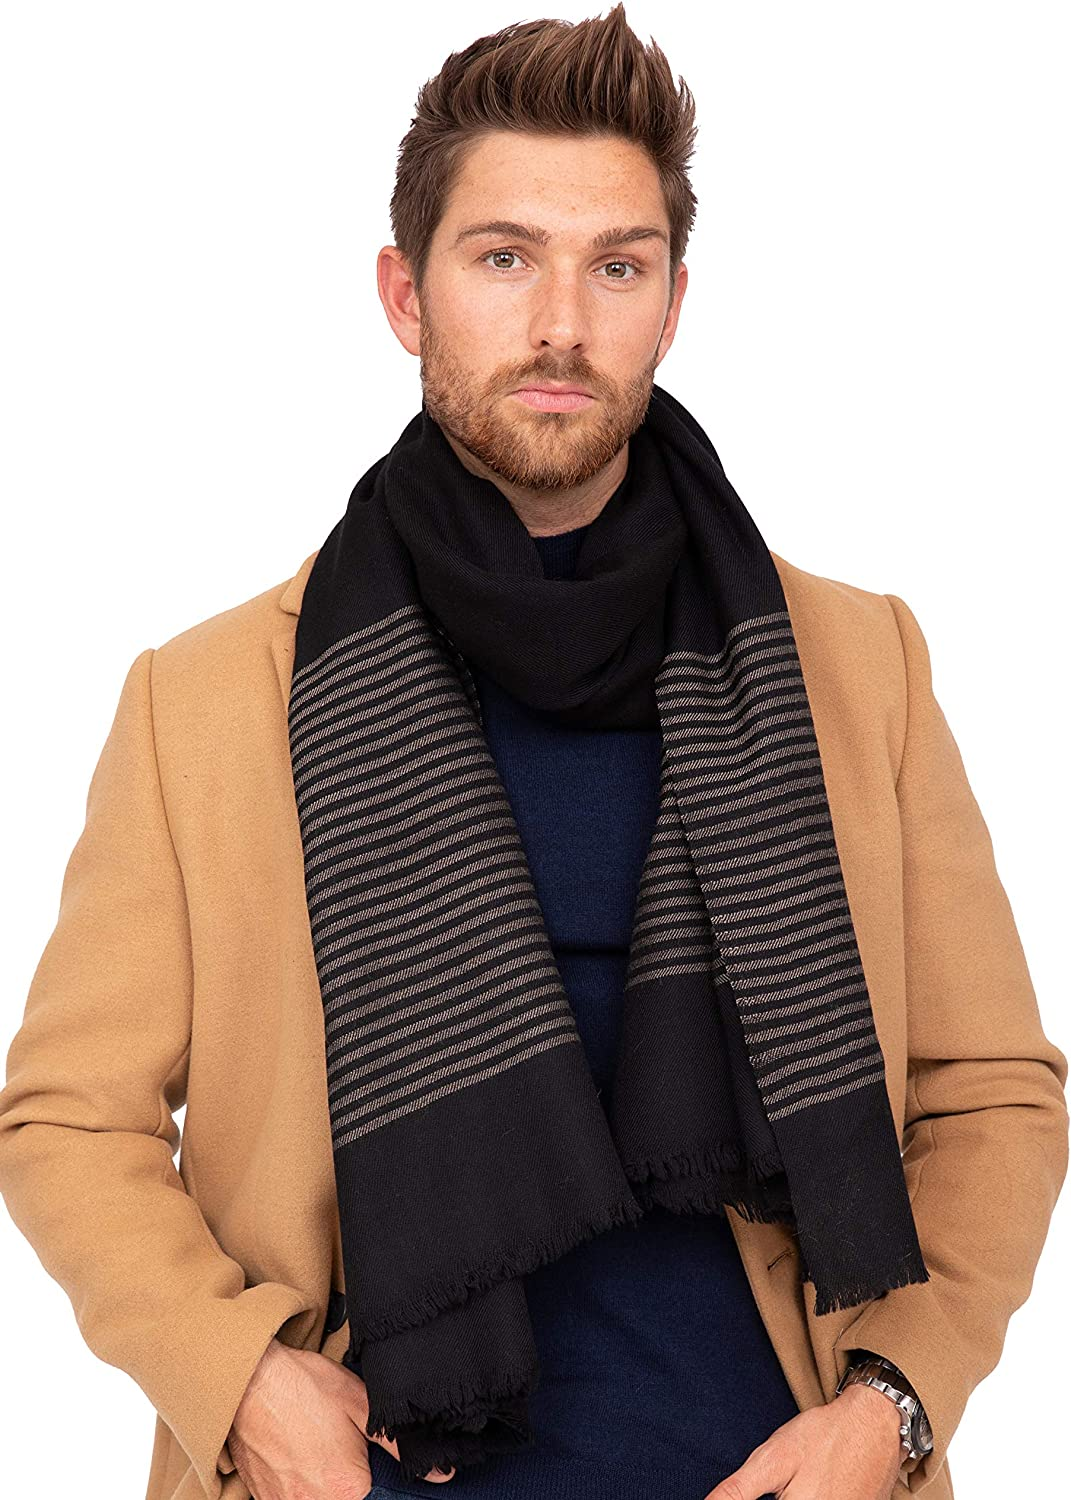 likemary Mens Merino Wool Blanket Scarf Oversize Muffler /& Travel Wrap Handwoven in Twill with Stripes 100 x 200cm